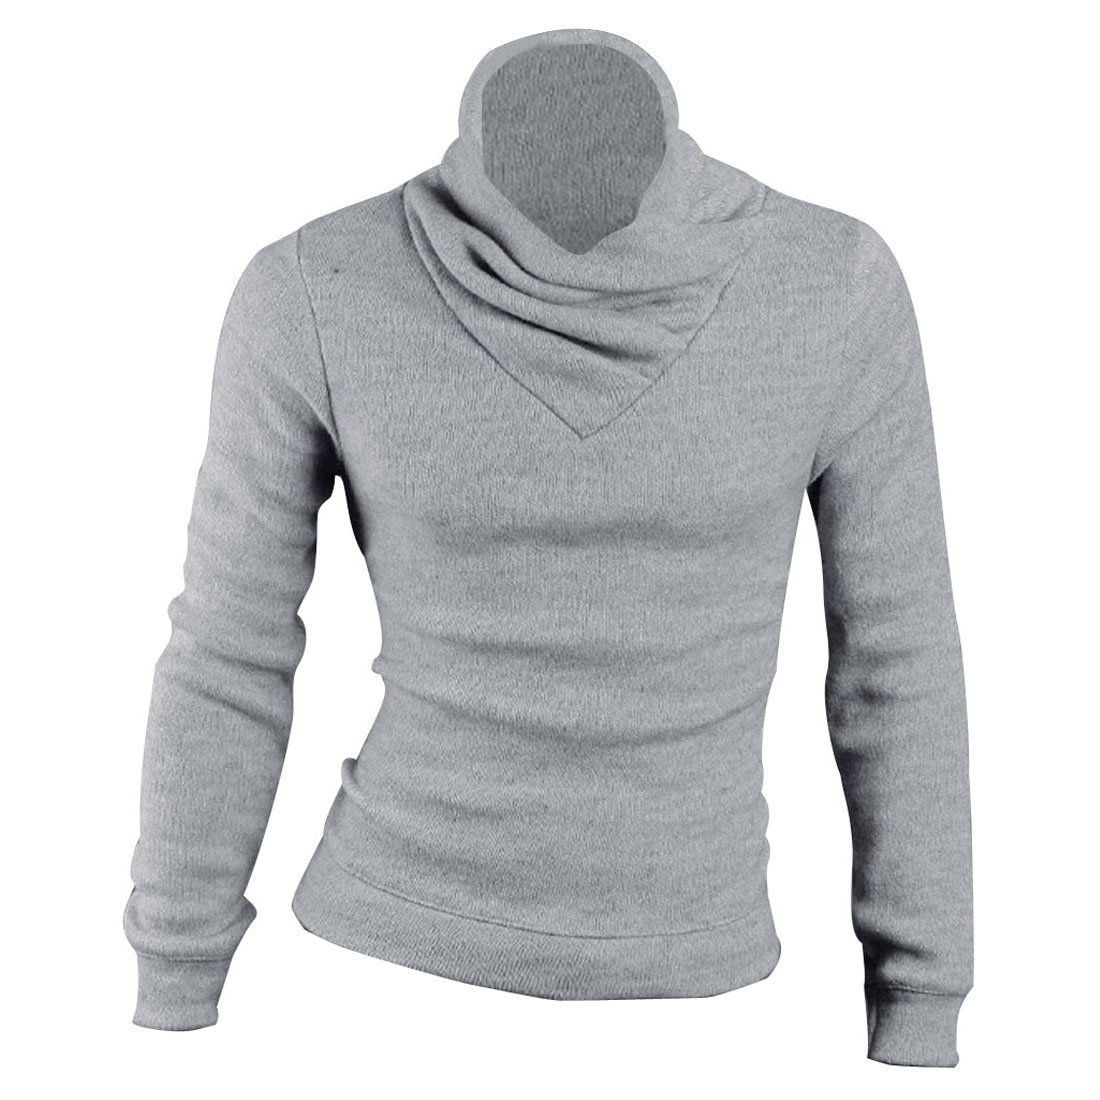 Men Long Sleeve Stretch Turtleneck Light Gray Pullover Knitwear S